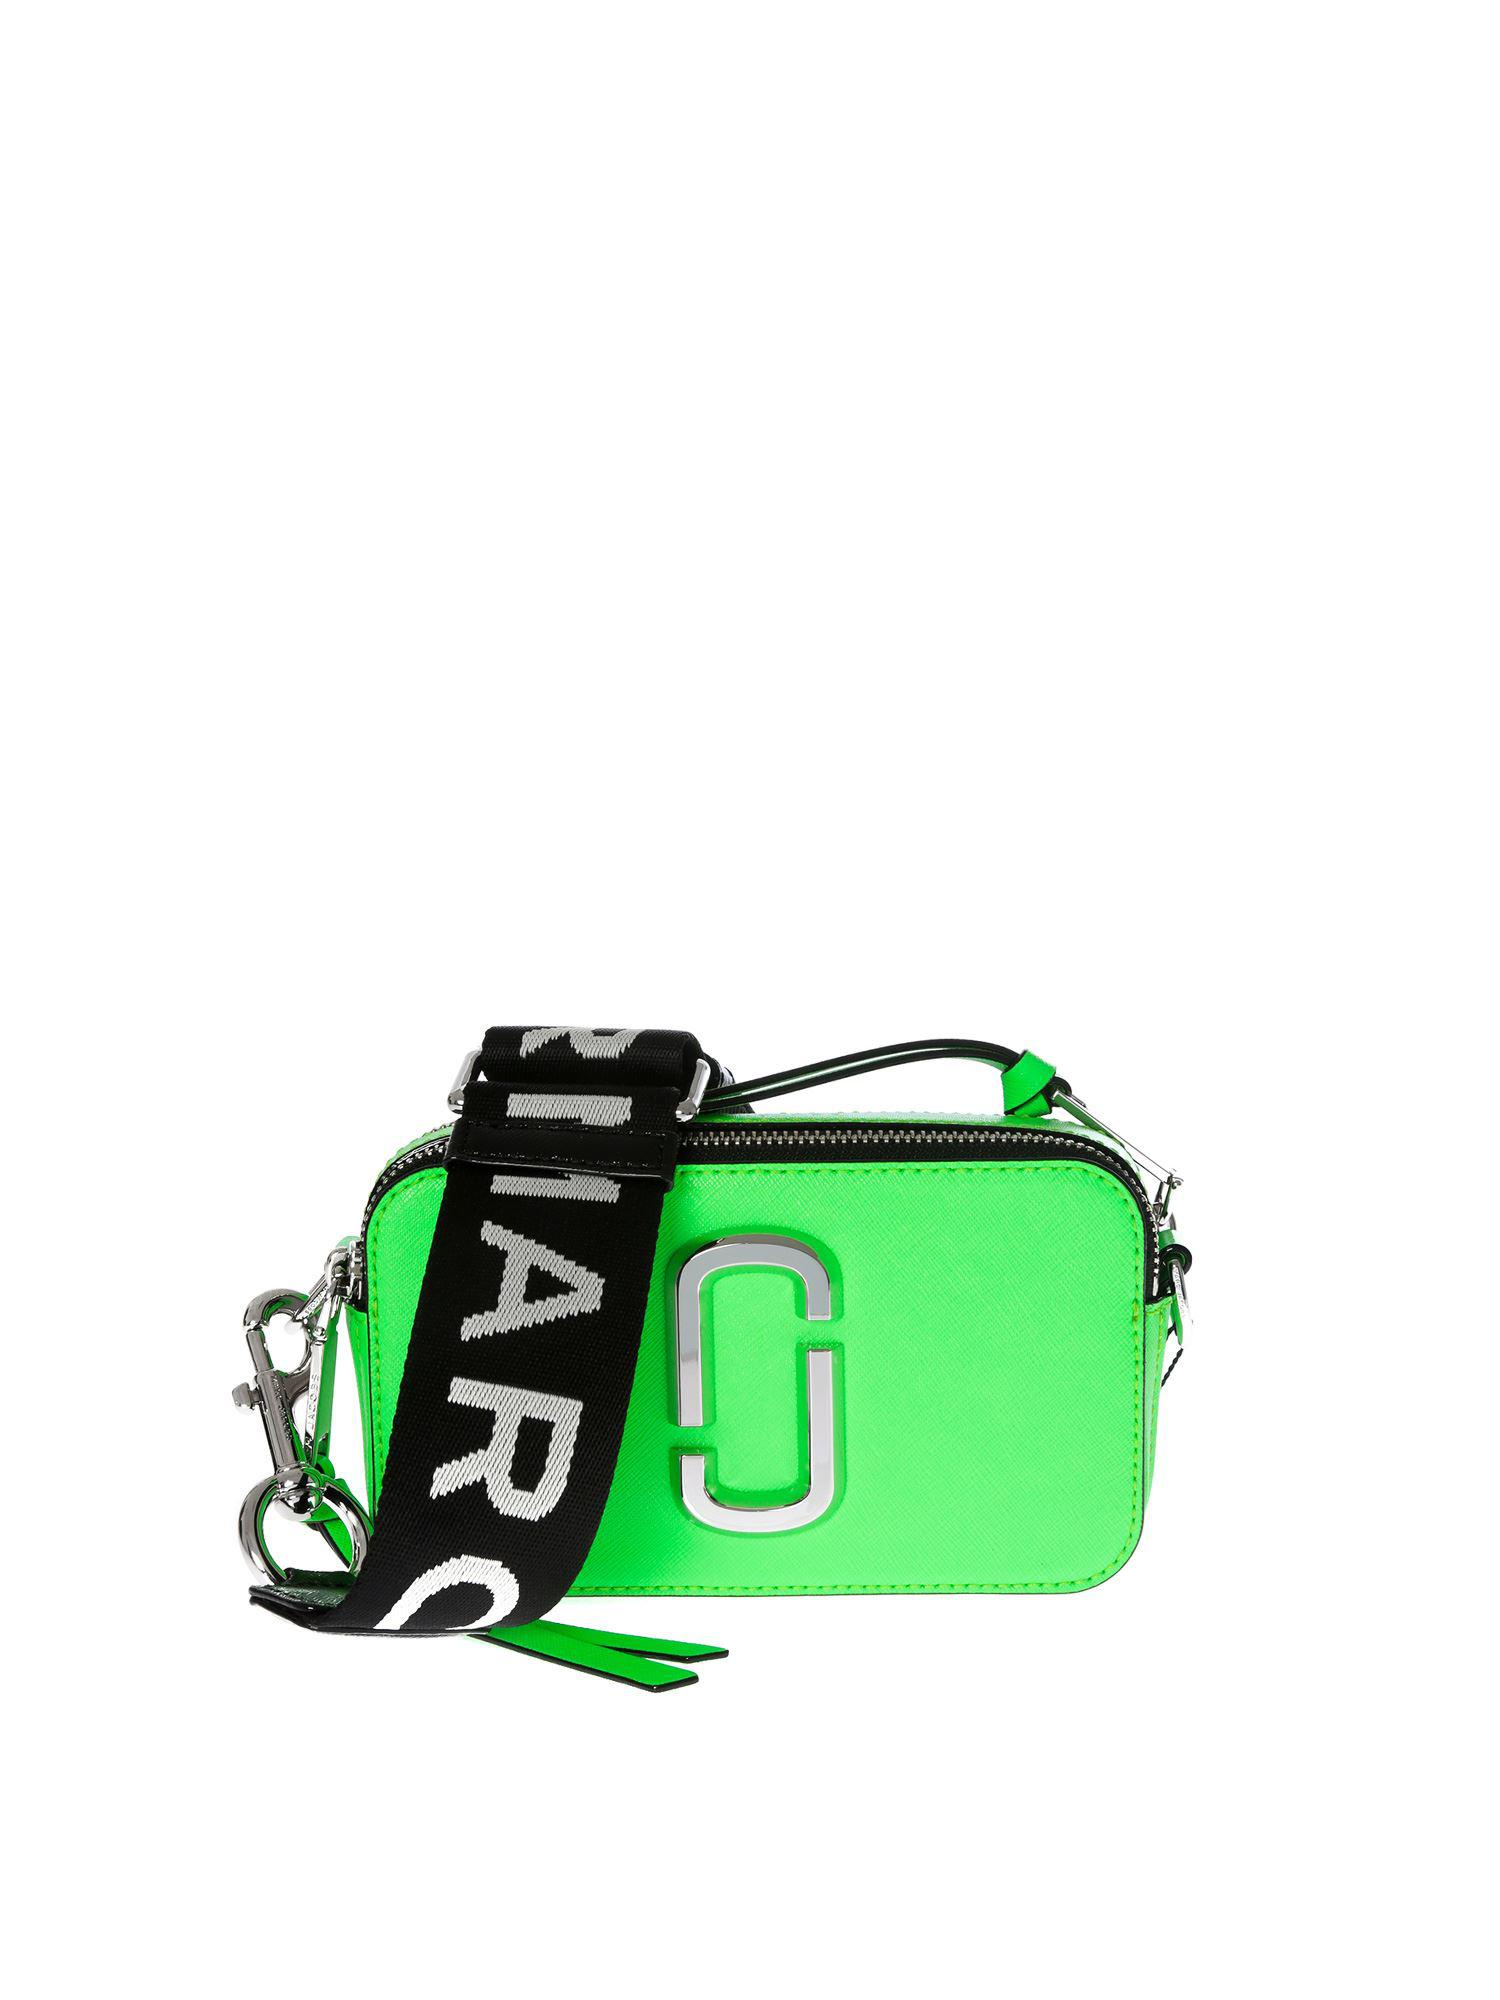 544b70be0a5f Lyst - Marc By Marc Jacobs Snapshot Camera Neon Green Bag in Green